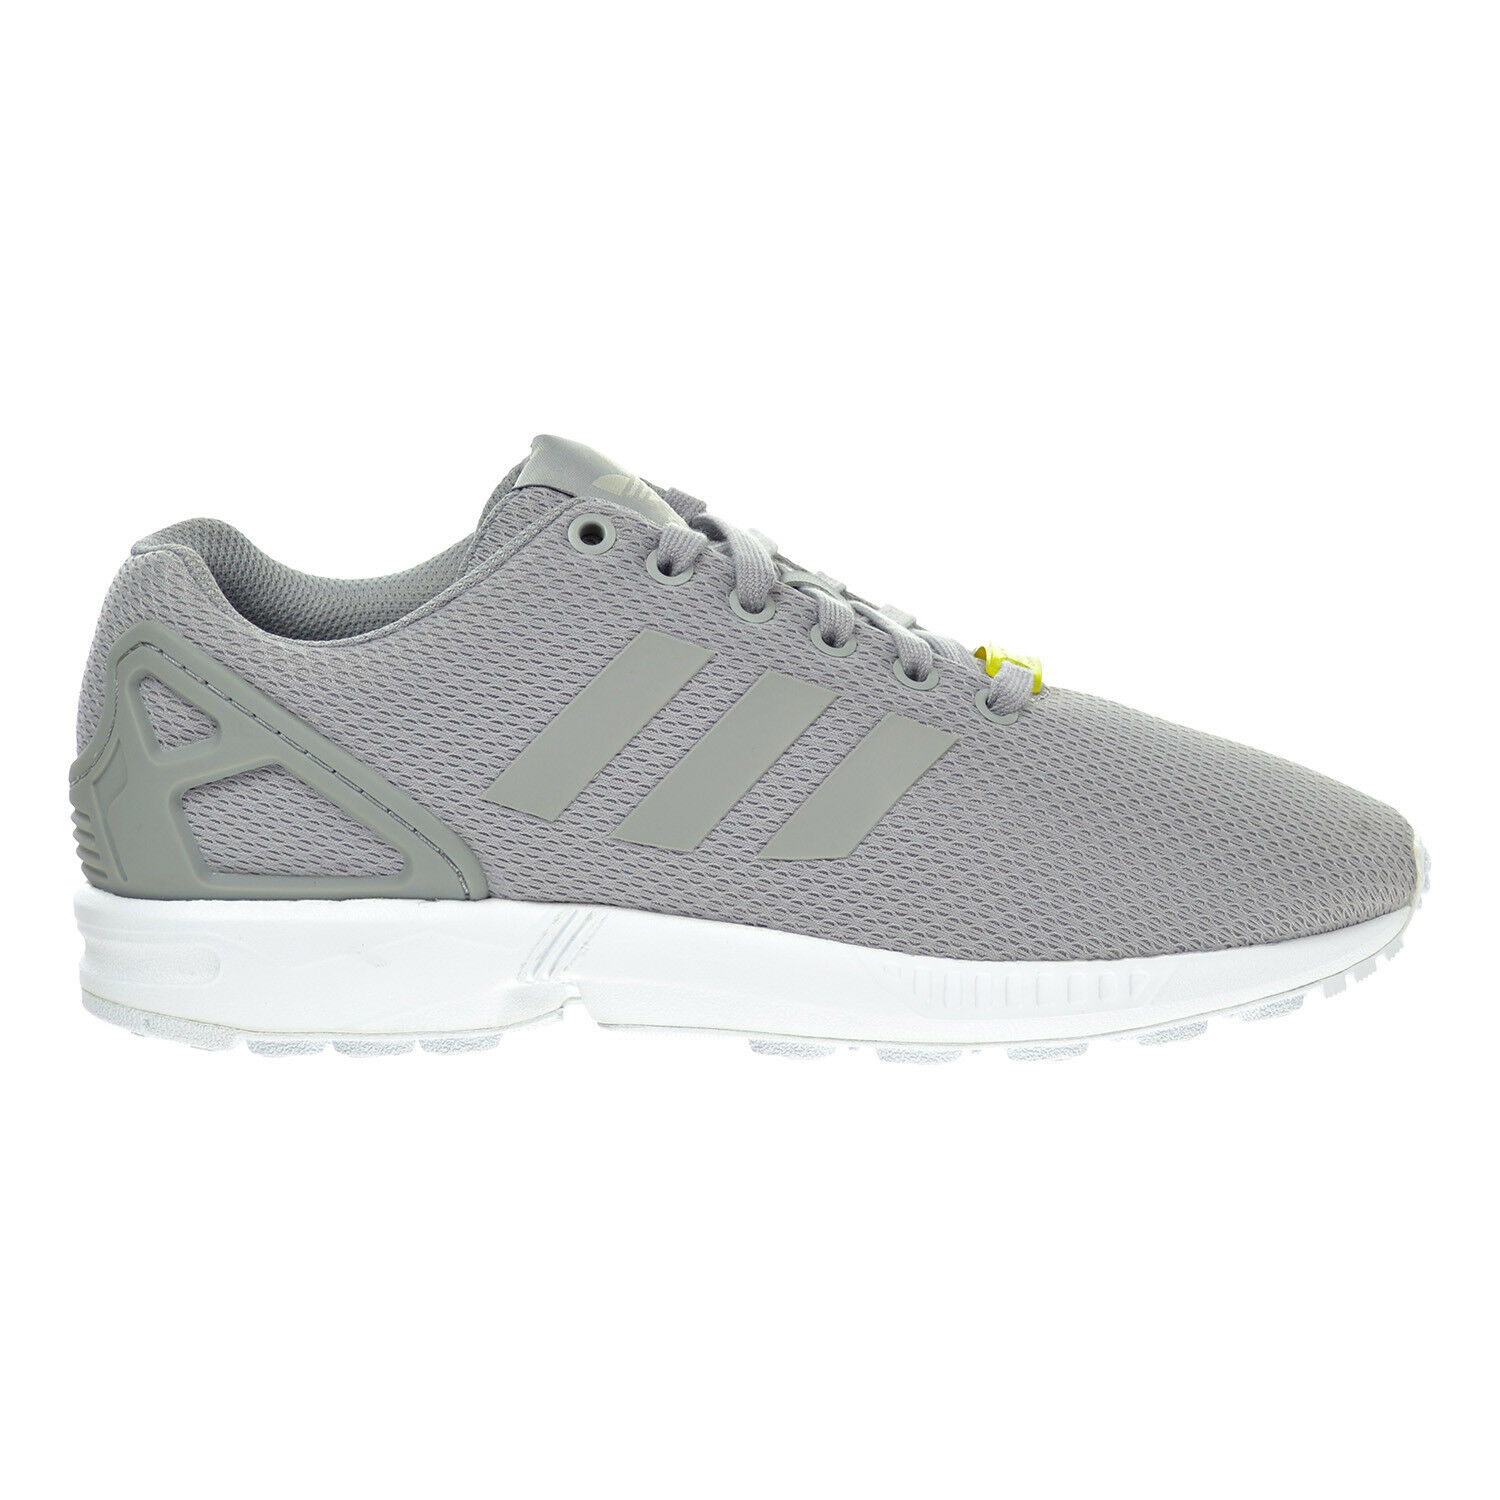 c8b379f7d Men s adidas ZX Flux Light Granite White Originals Sneaker M19838 Sz ...